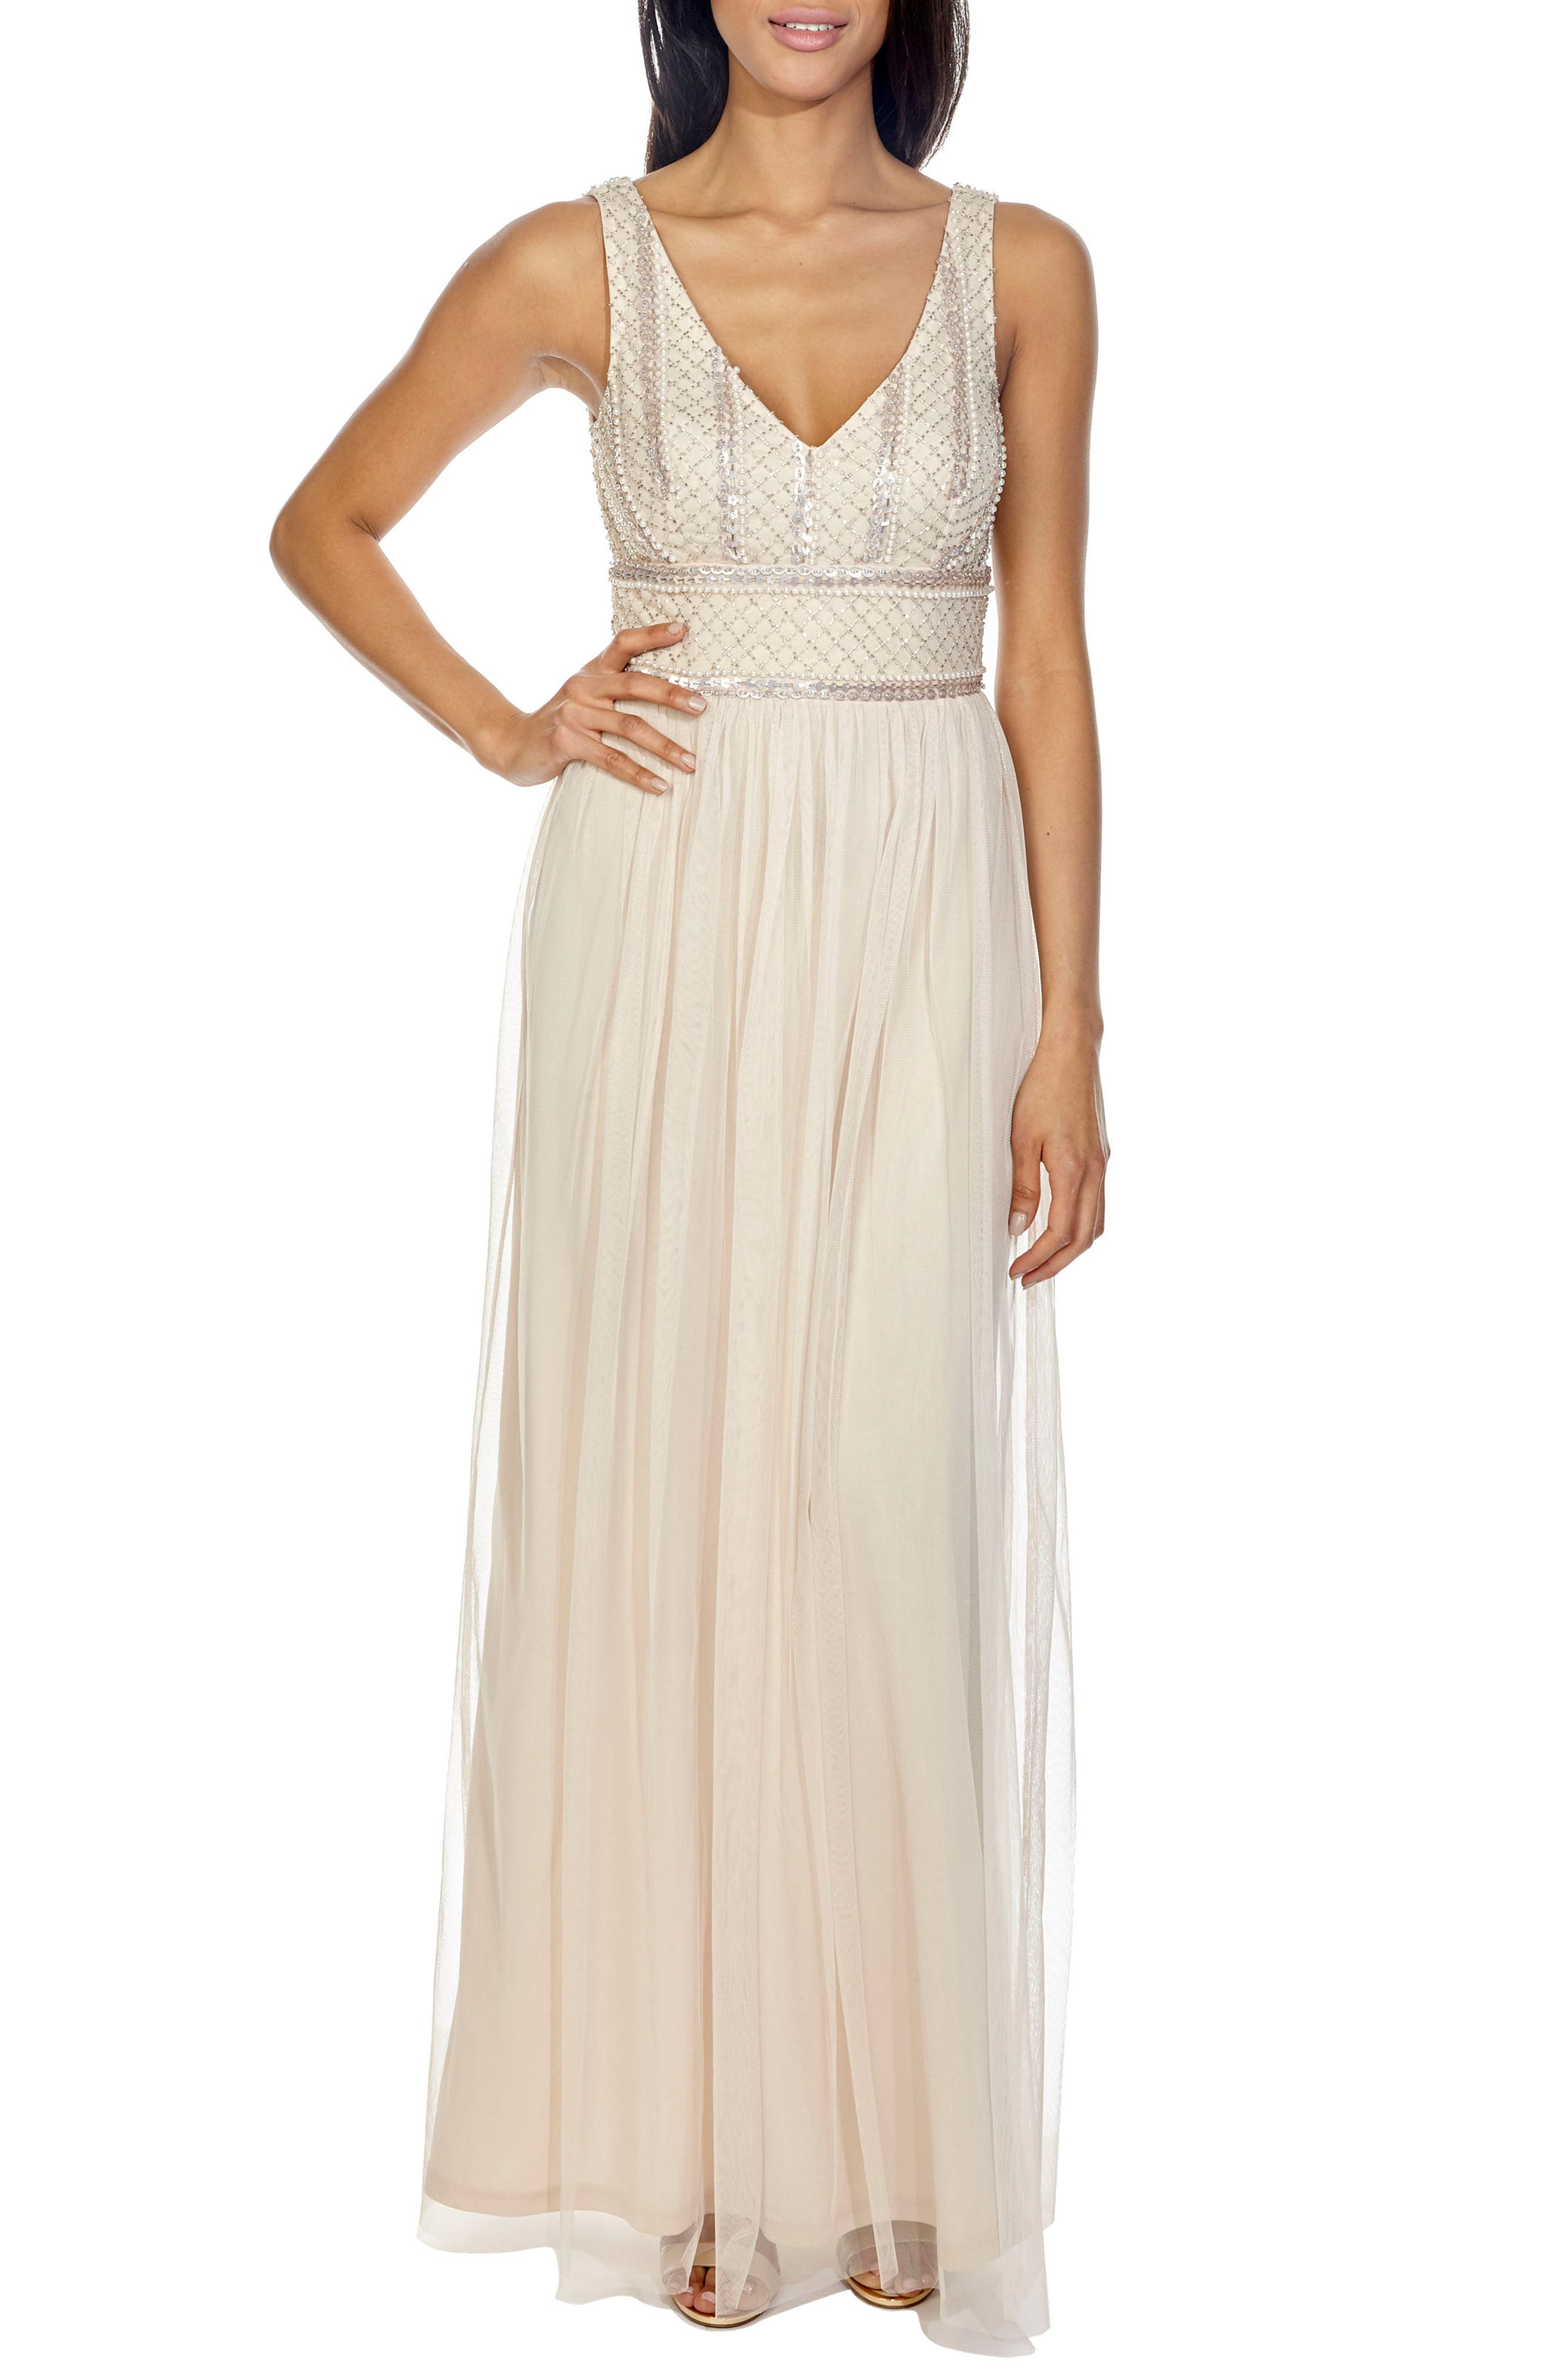 Mulan Sequin & Tulle Gown,                         Main,                         color, Nude